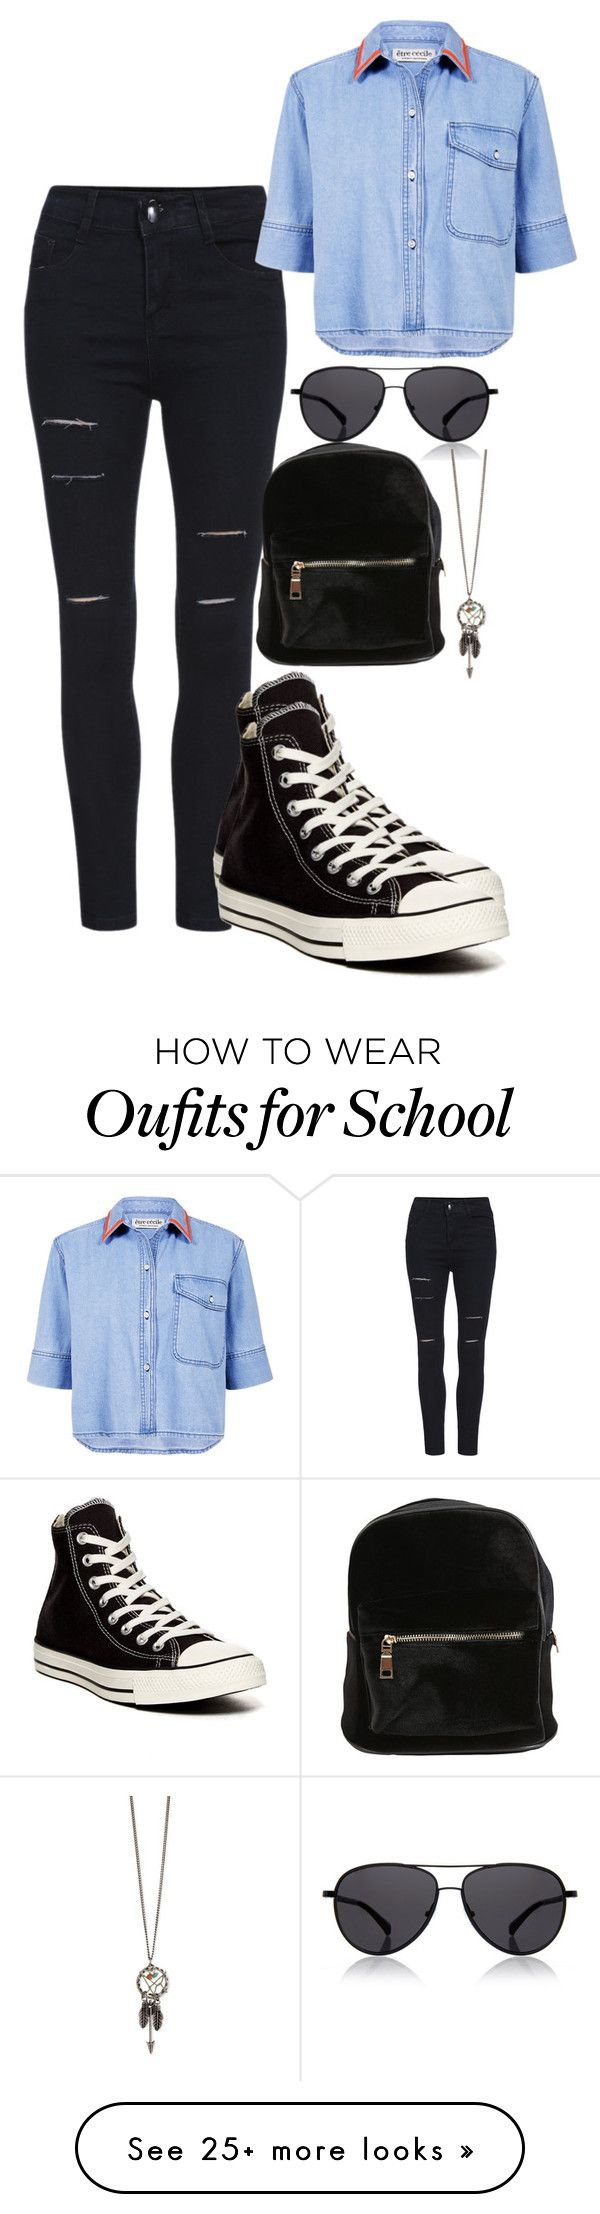 """School Casual"" by chap15906248 on Polyvore featuring The Row, Être Cécile and Converse"